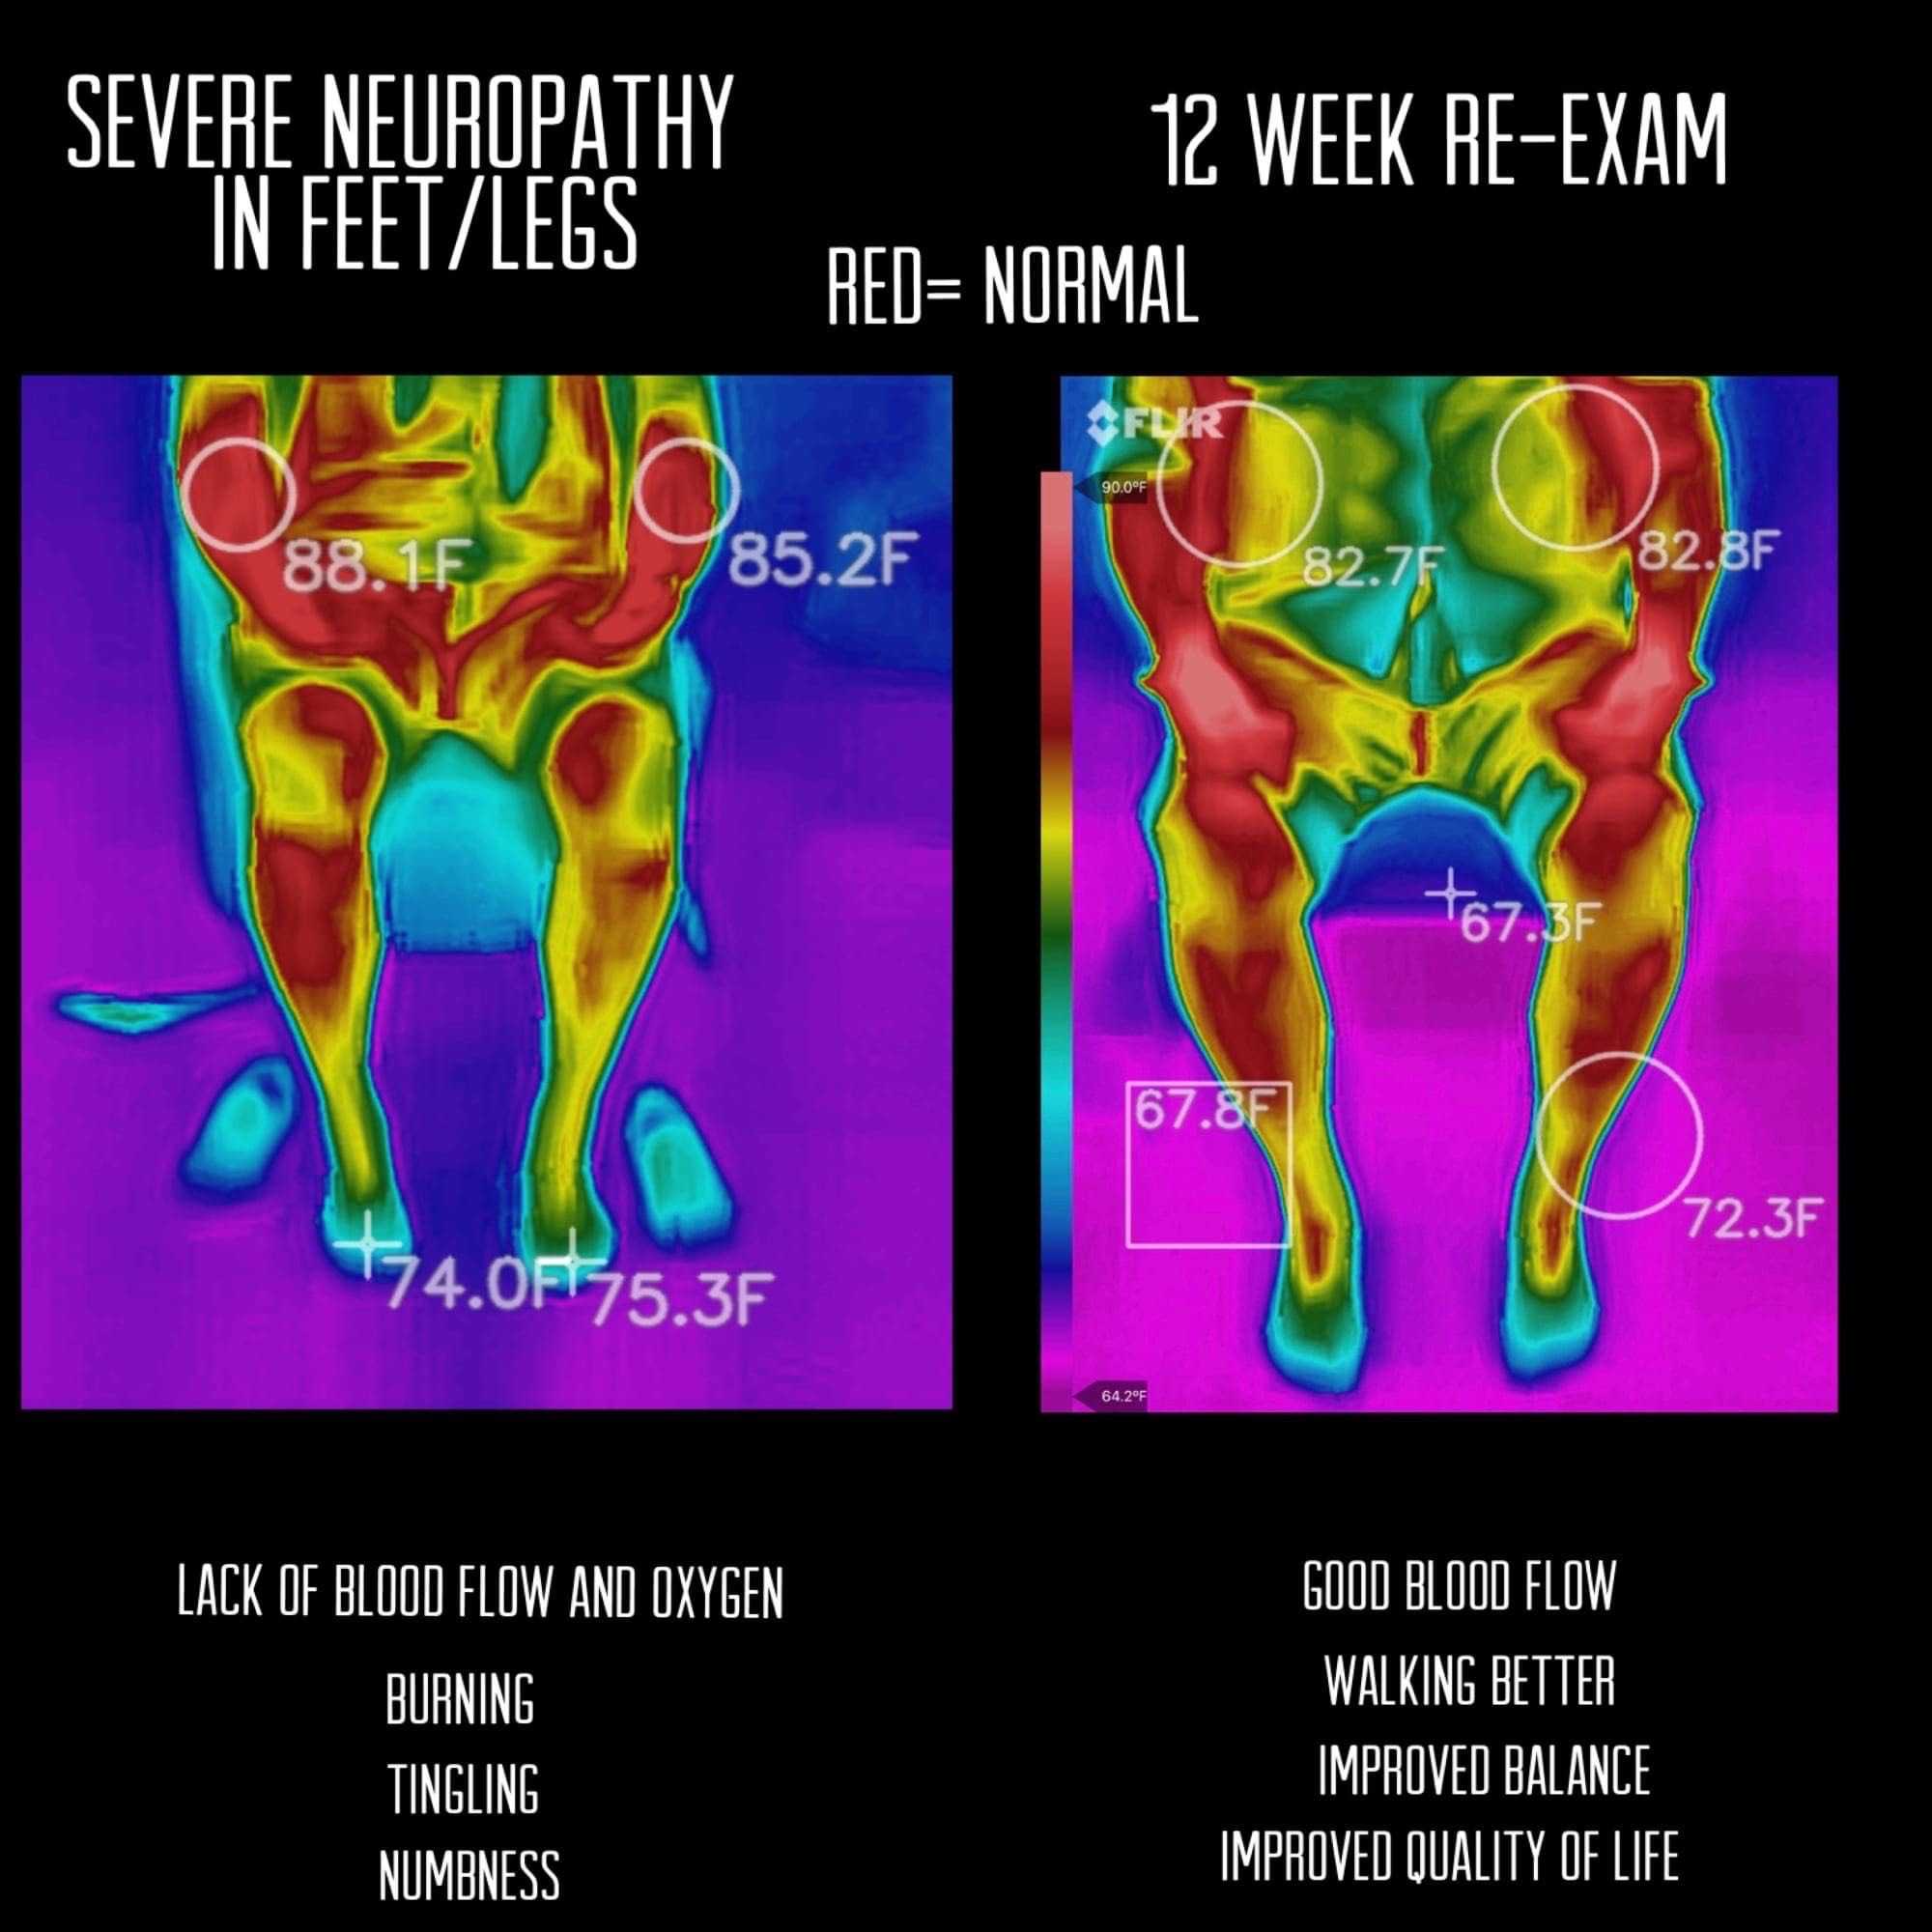 Thermal Image for Neuropathy